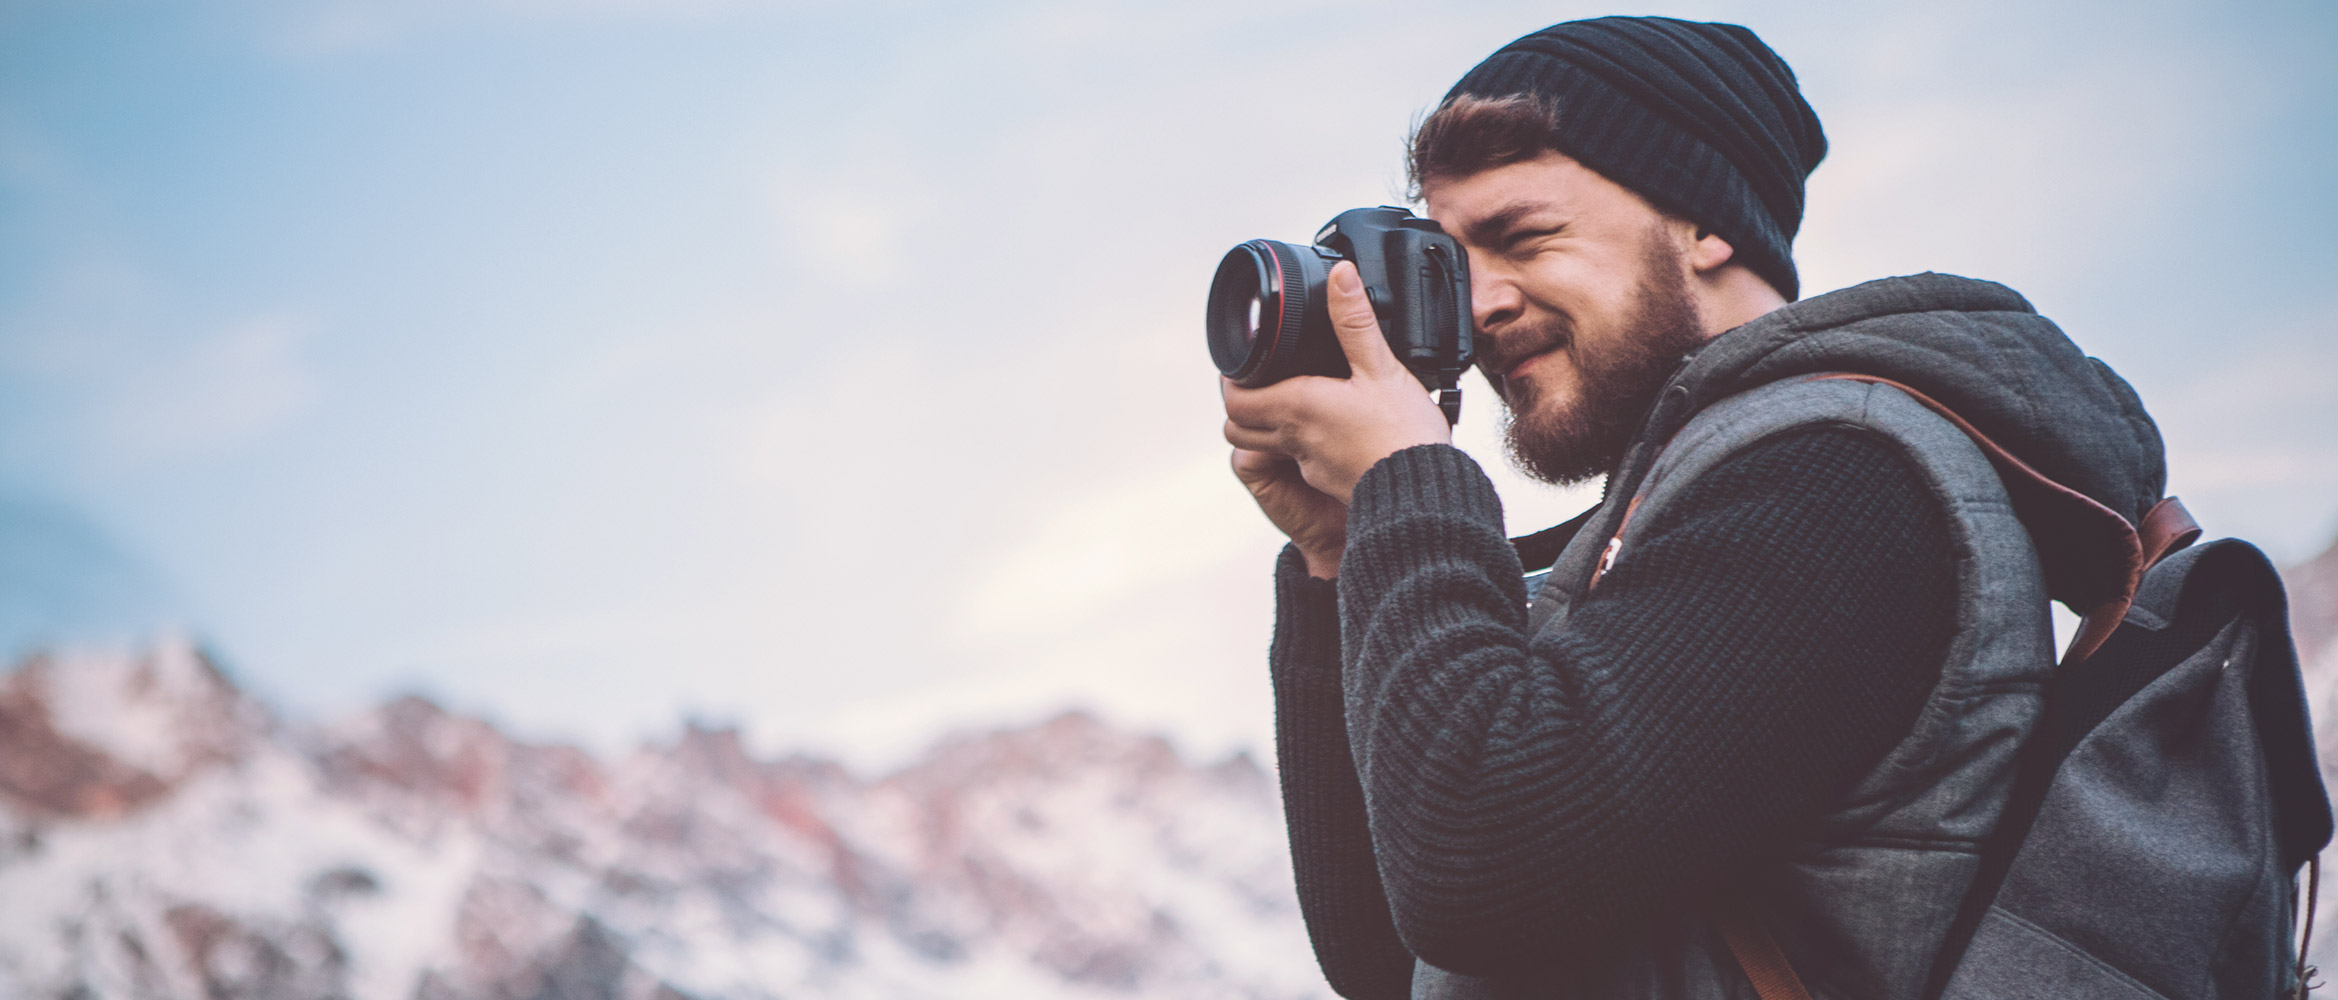 Must-have camera equipment every photographer needs - TripSmarts ...